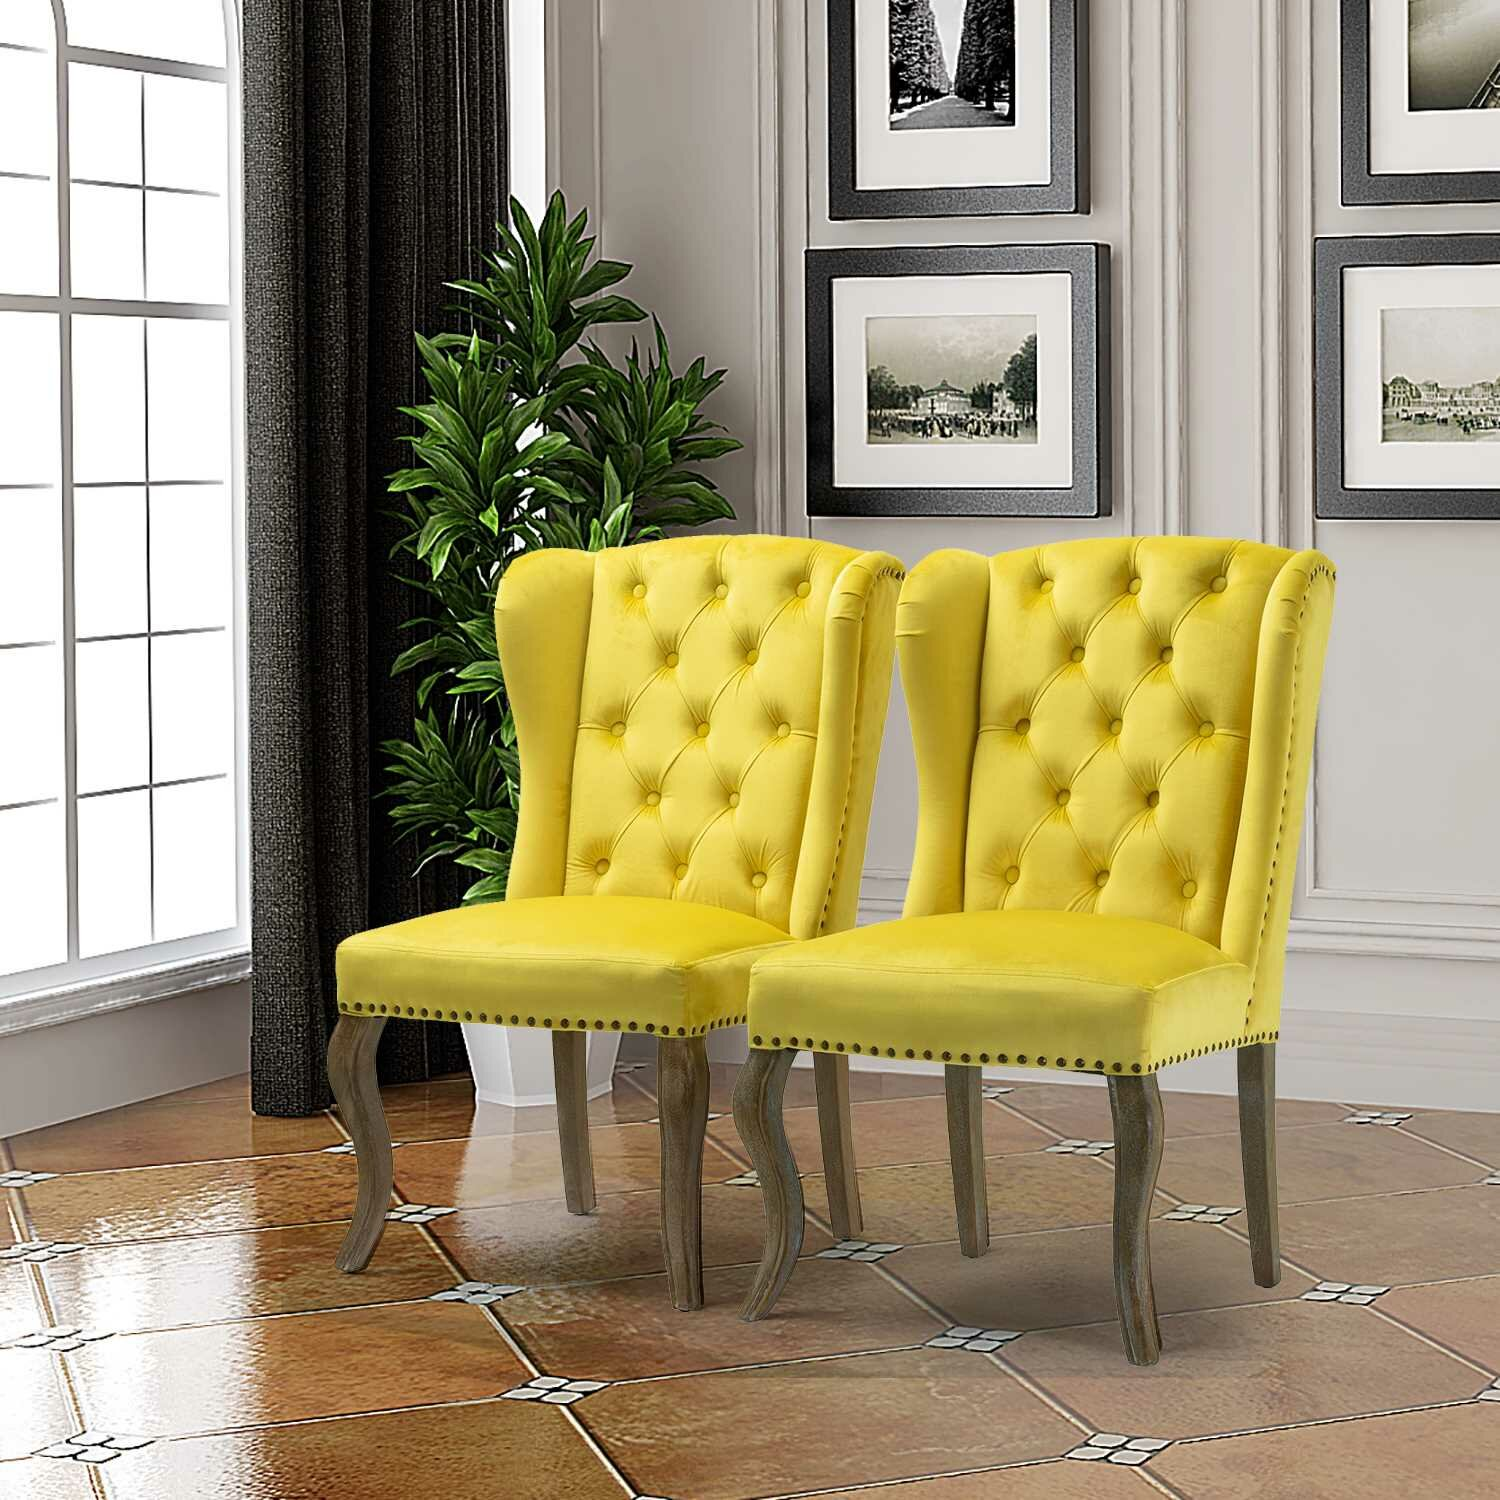 Details About Canora Grey Jolene Wingback Chair Set Of 2